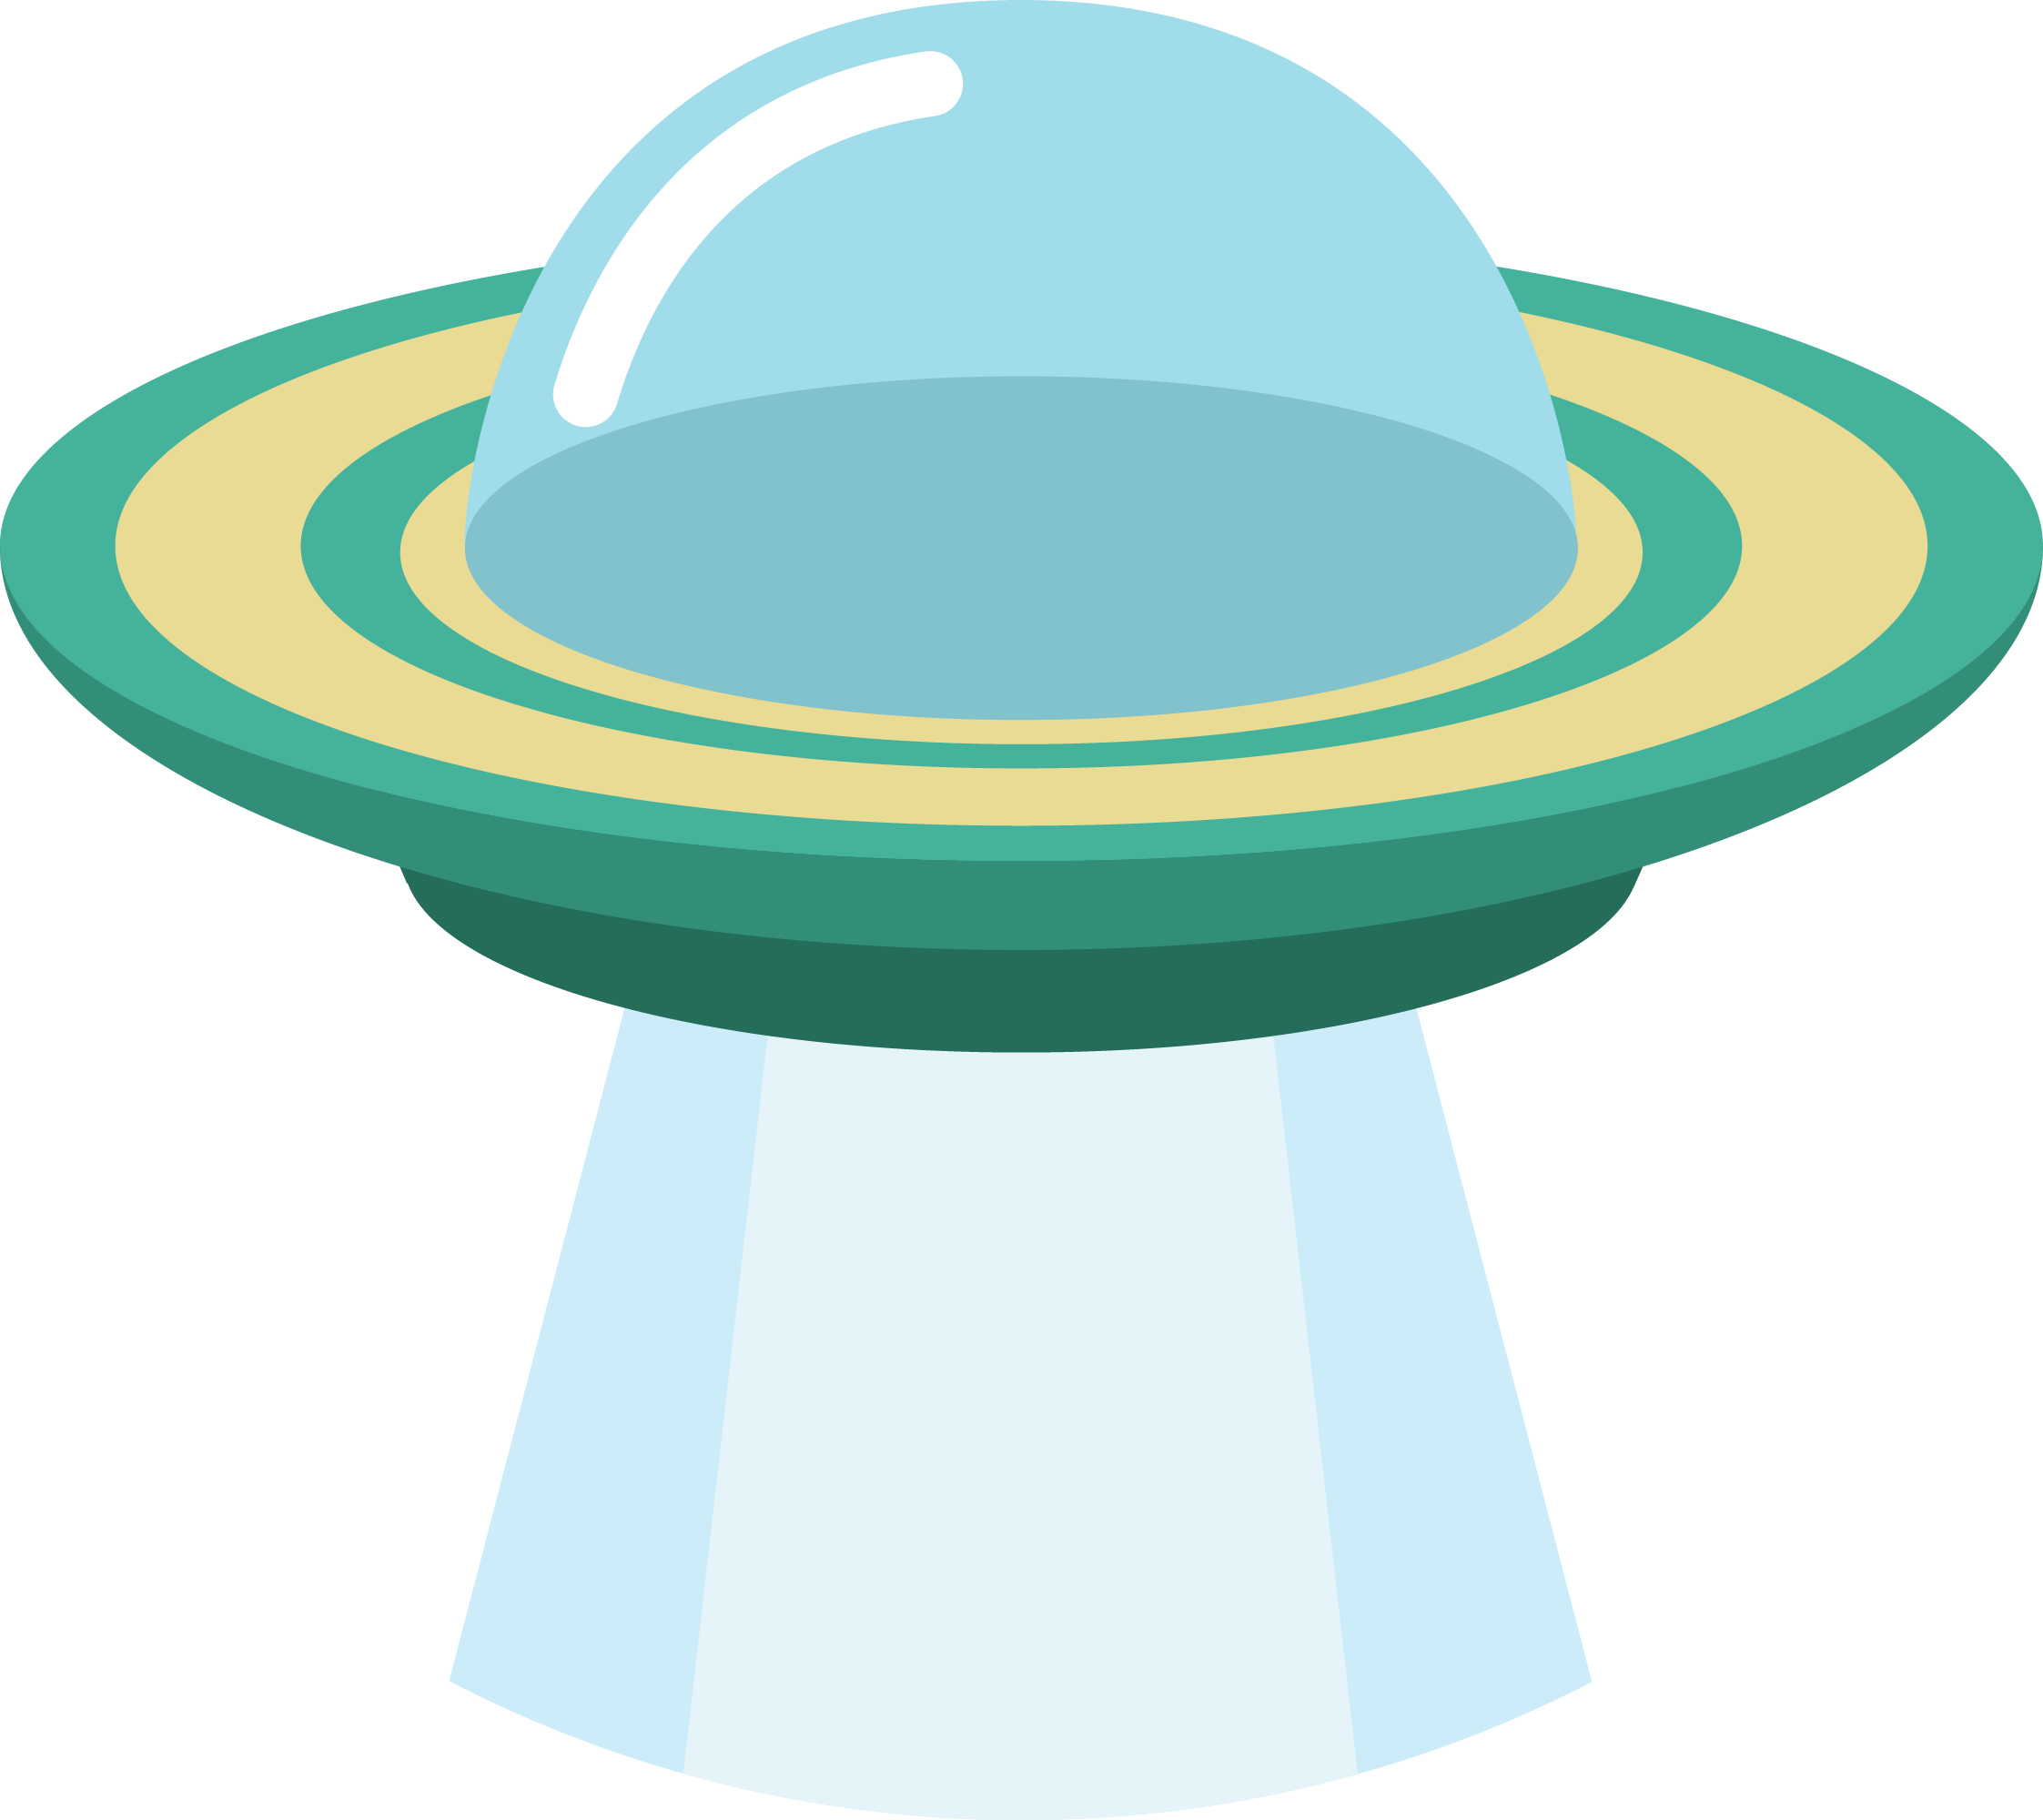 Ufo PNG images free download.